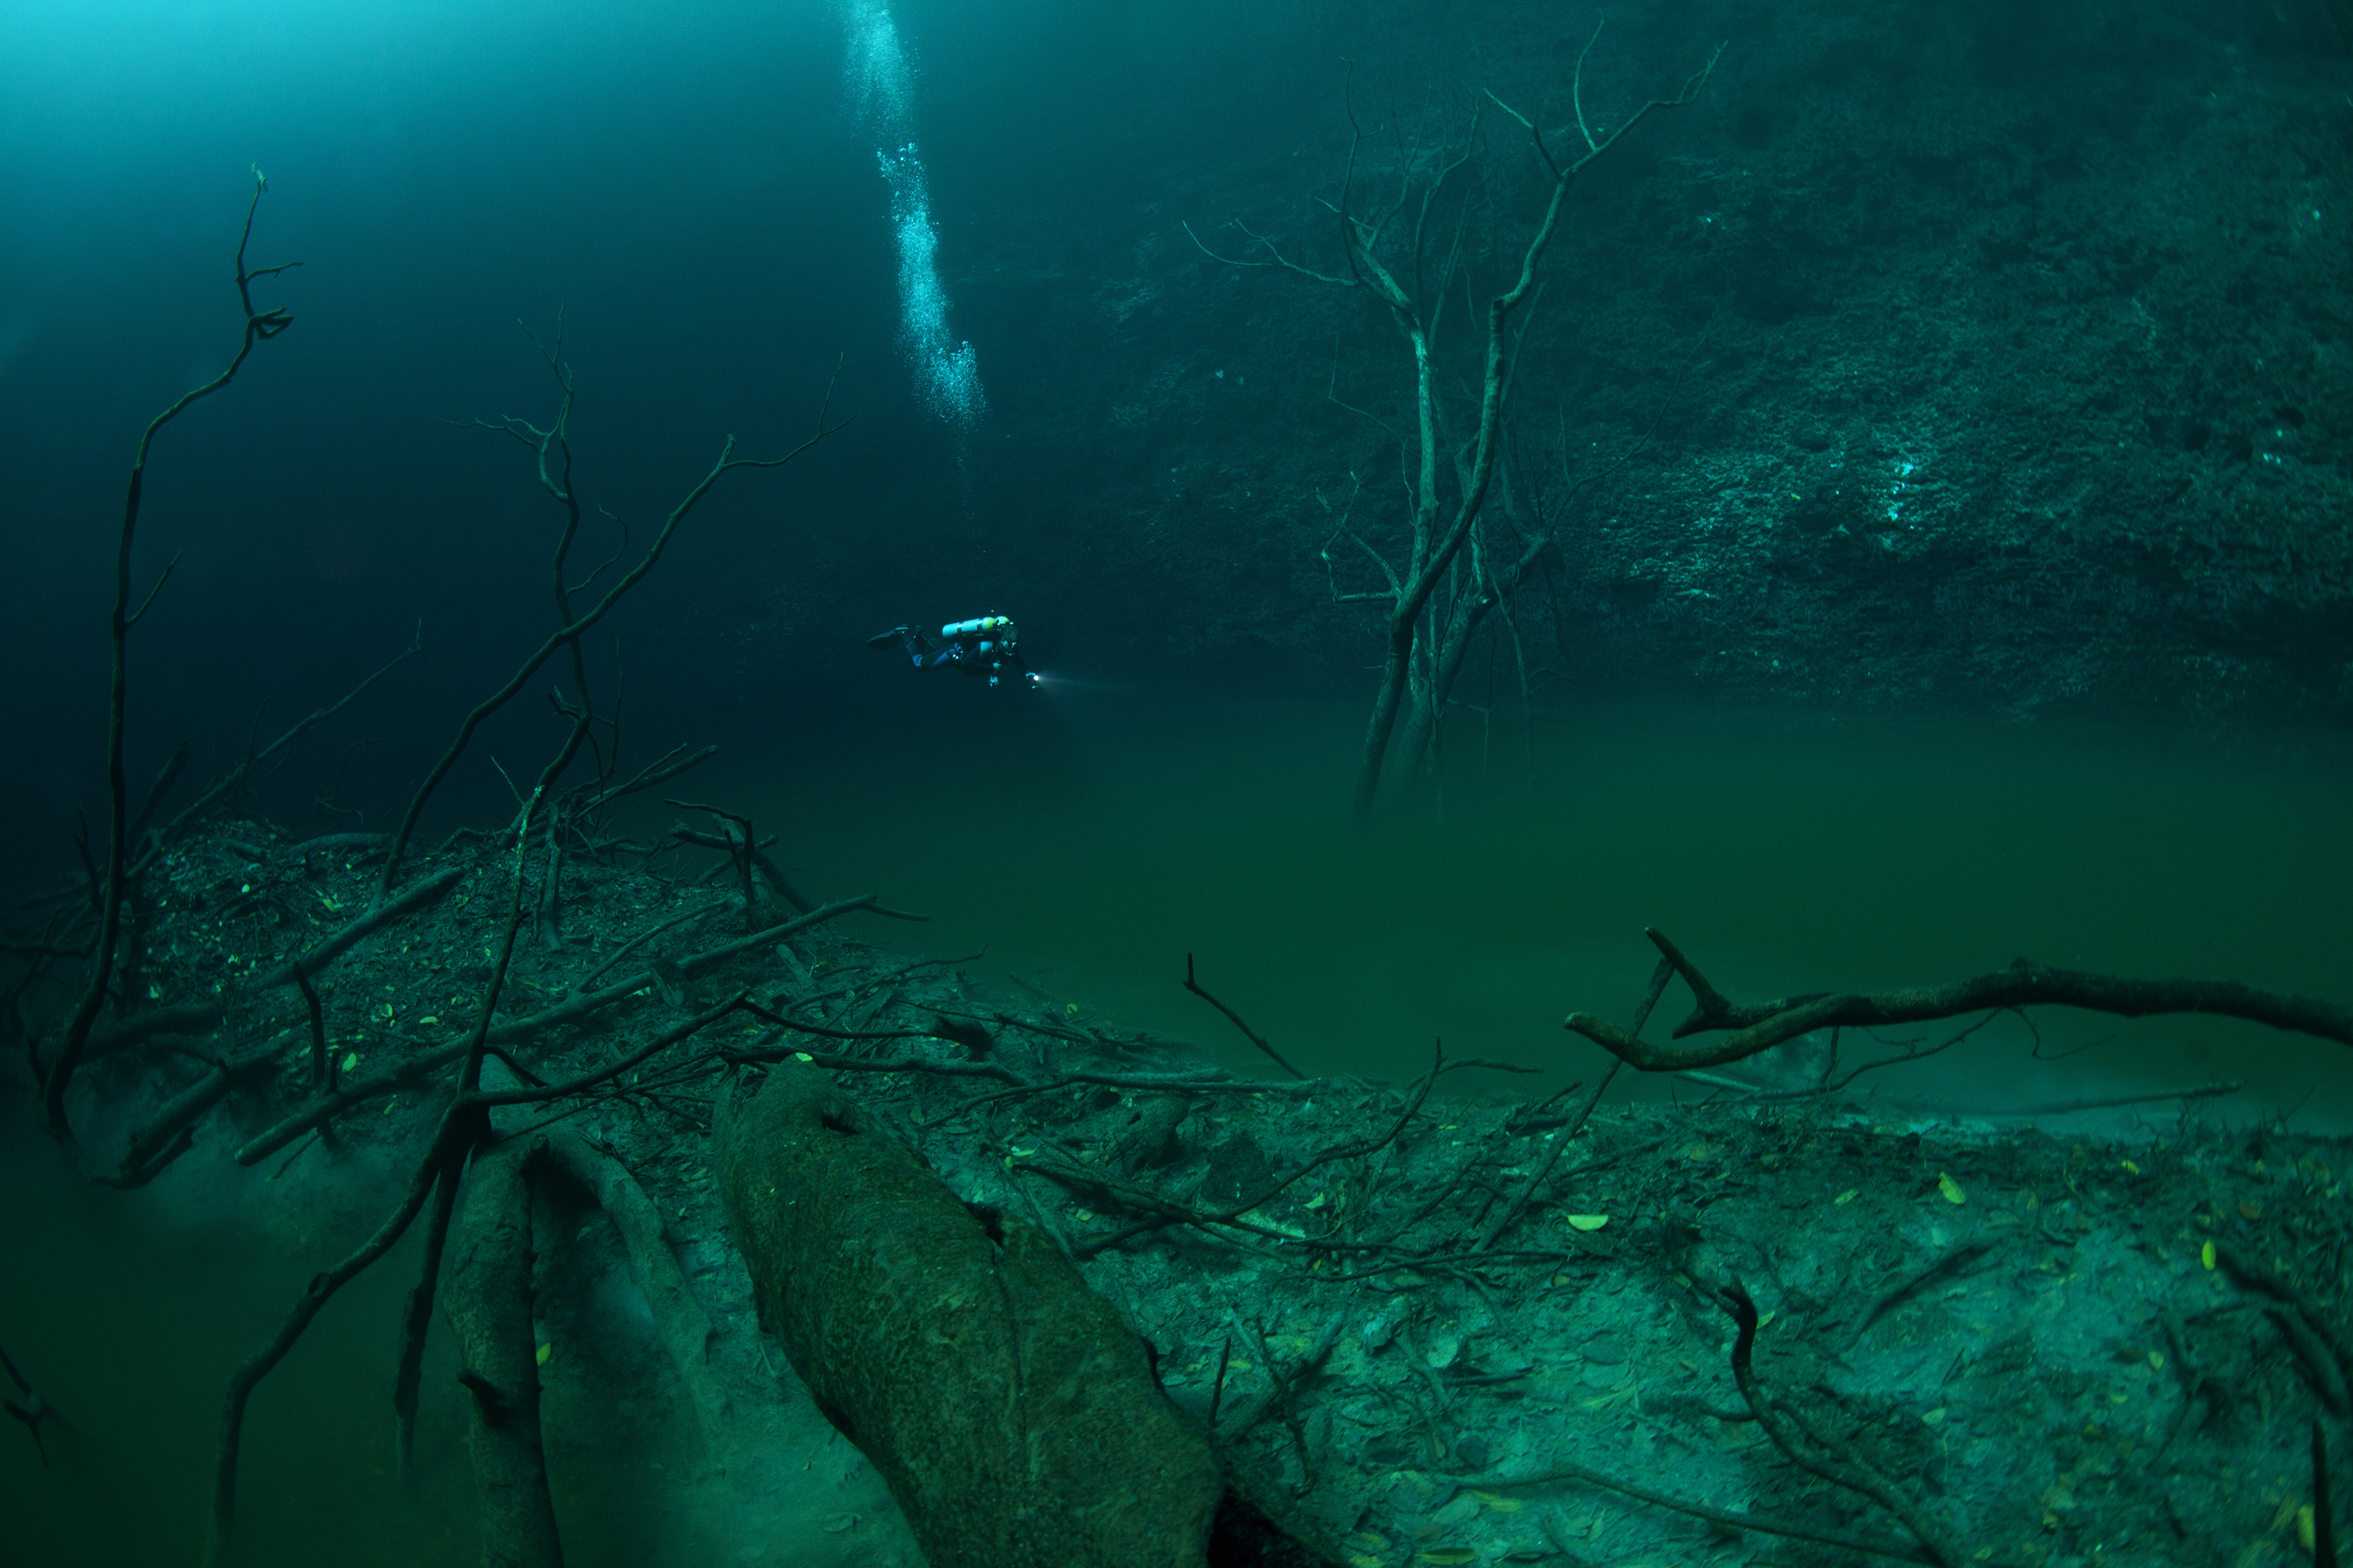 Underwater River : pic... Underwater River Bed